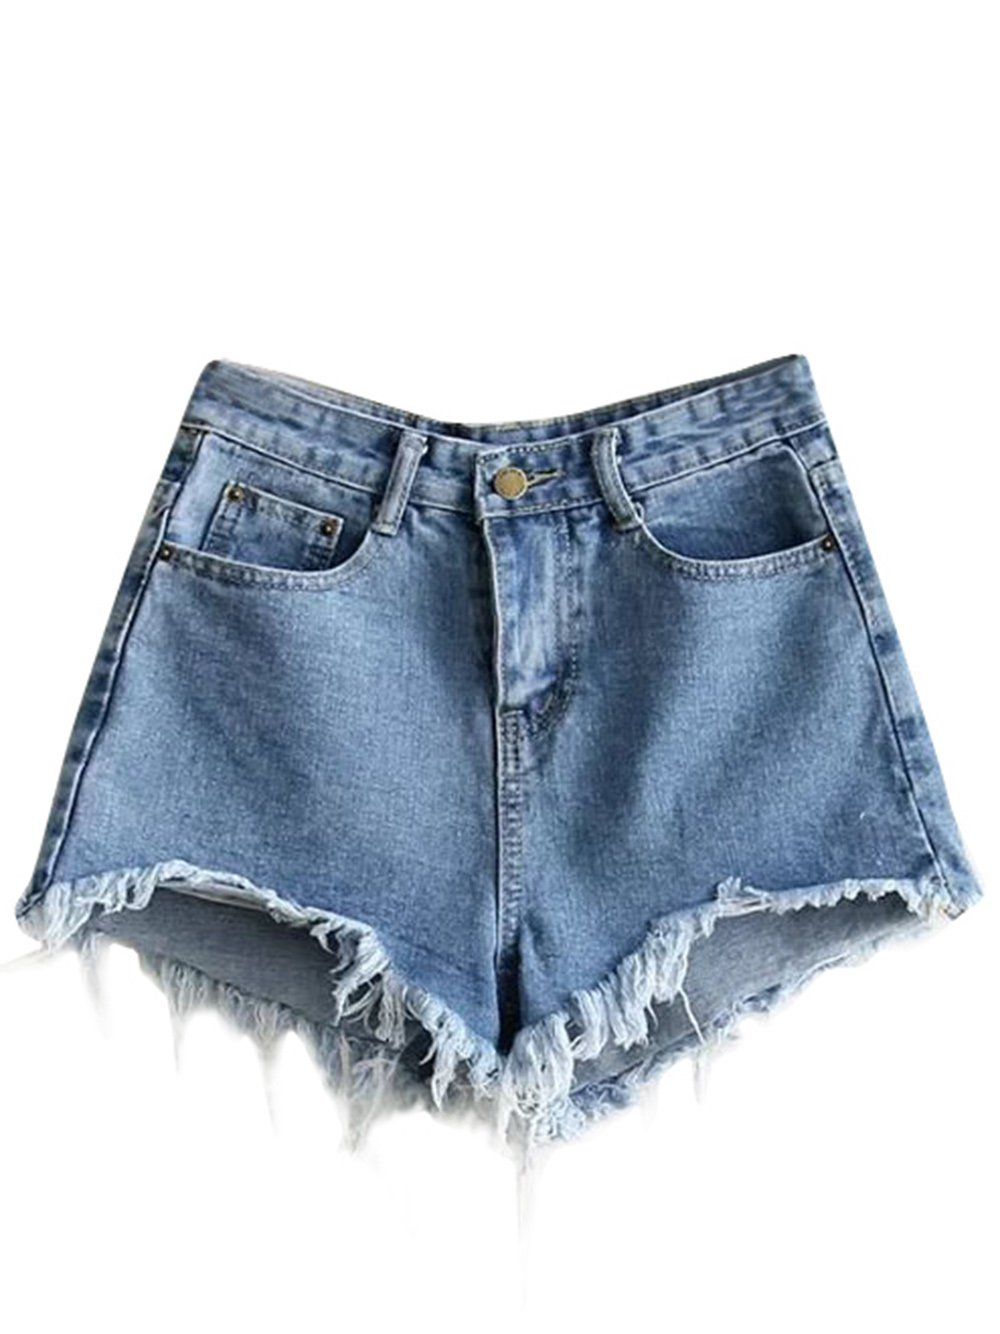 MakeMeChic Women's Cutoff Pocket Distressed Ripped Jean Denim Shorts Blue-1 L